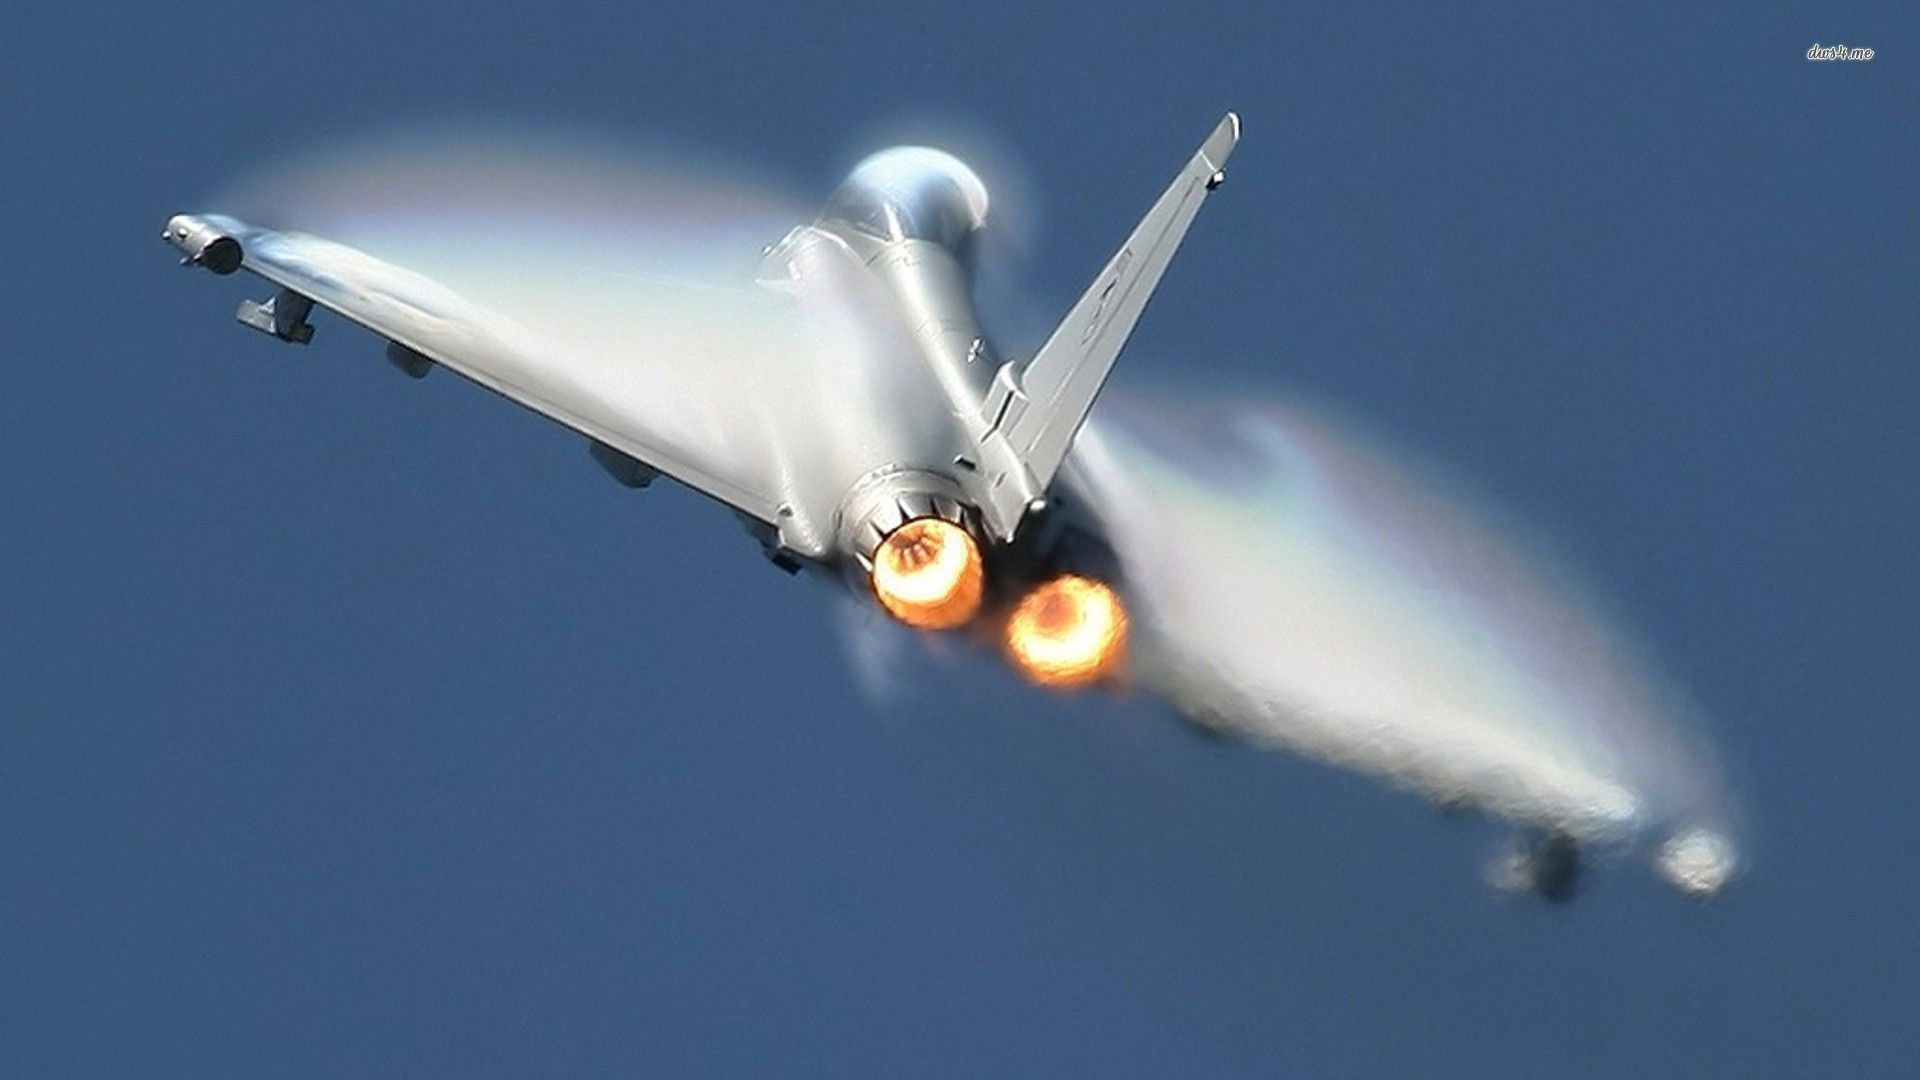 eurofighter typhoon wallpapers - wallpaper cave | epic car